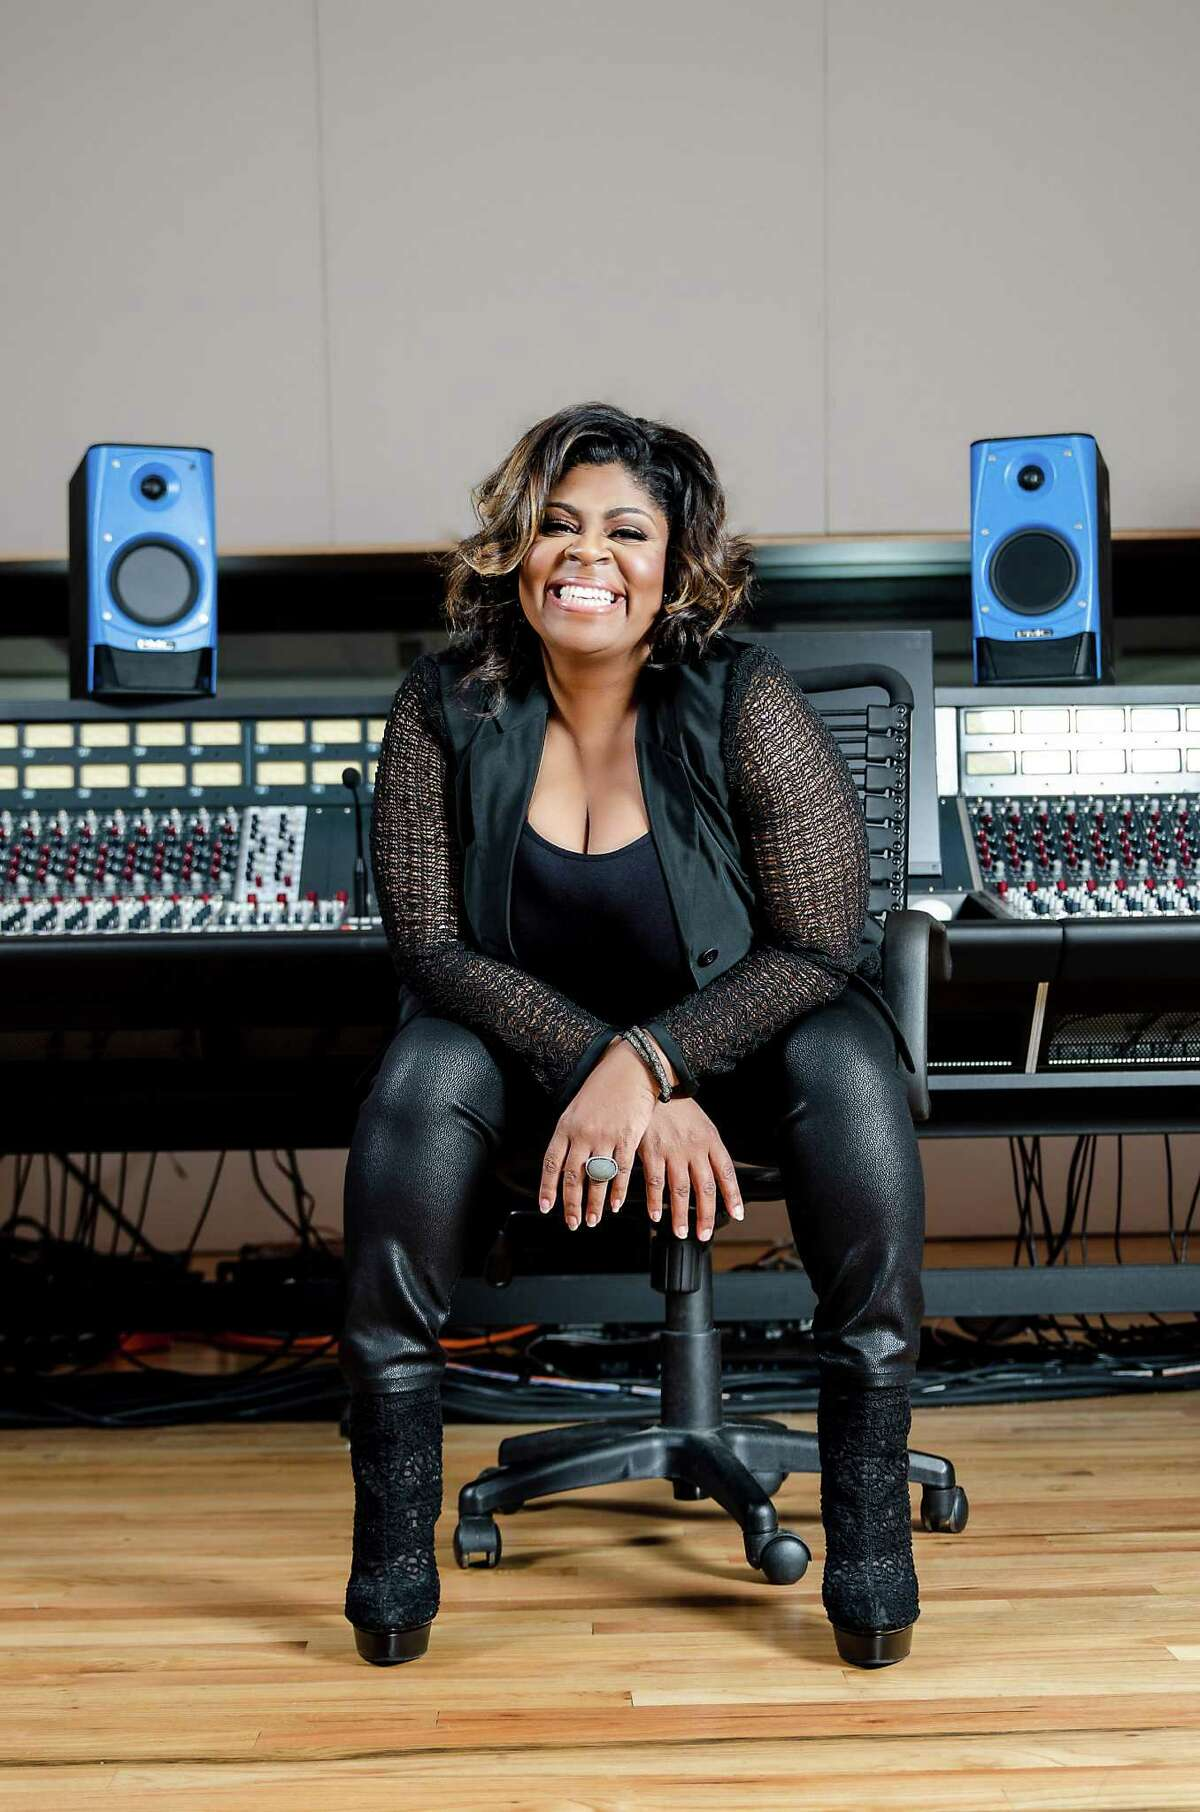 TSU has reportedly canceled gospel singer Kim Burrell's radio show after her anti-gay comments spread online.